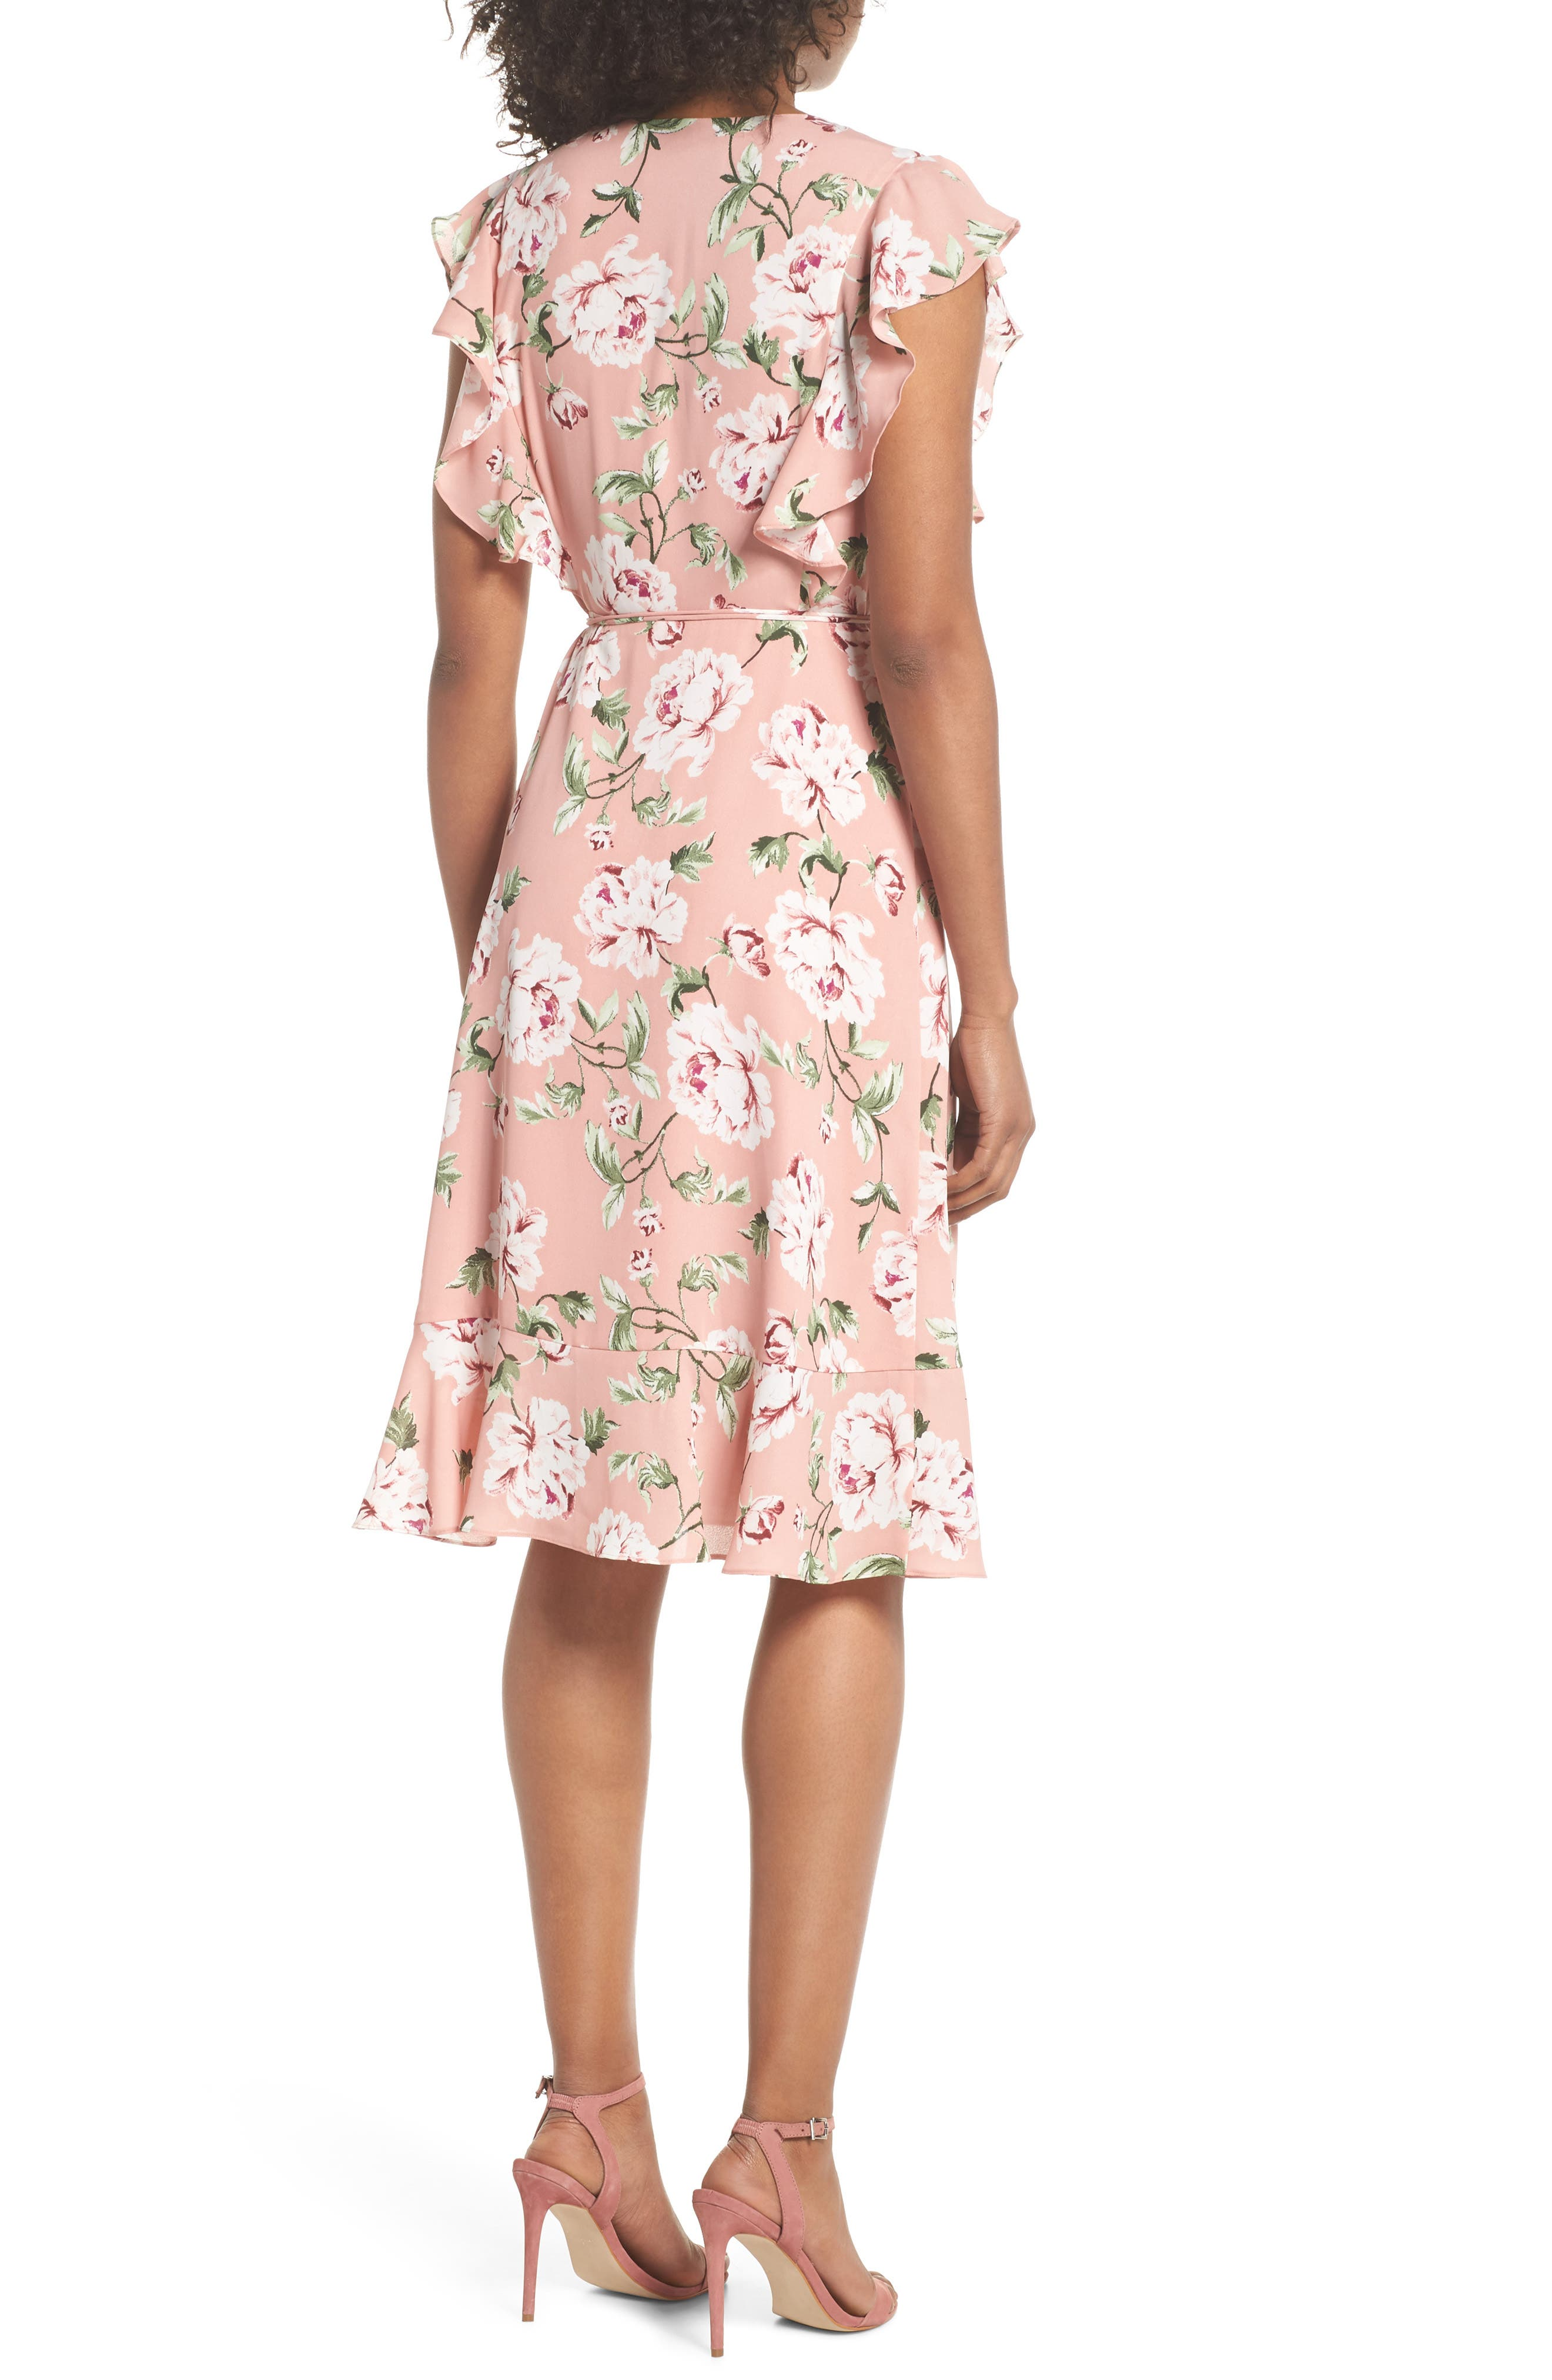 CHARLES HENRY, Ruffle Sleeve Floral Wrap Dress, Alternate thumbnail 2, color, 652